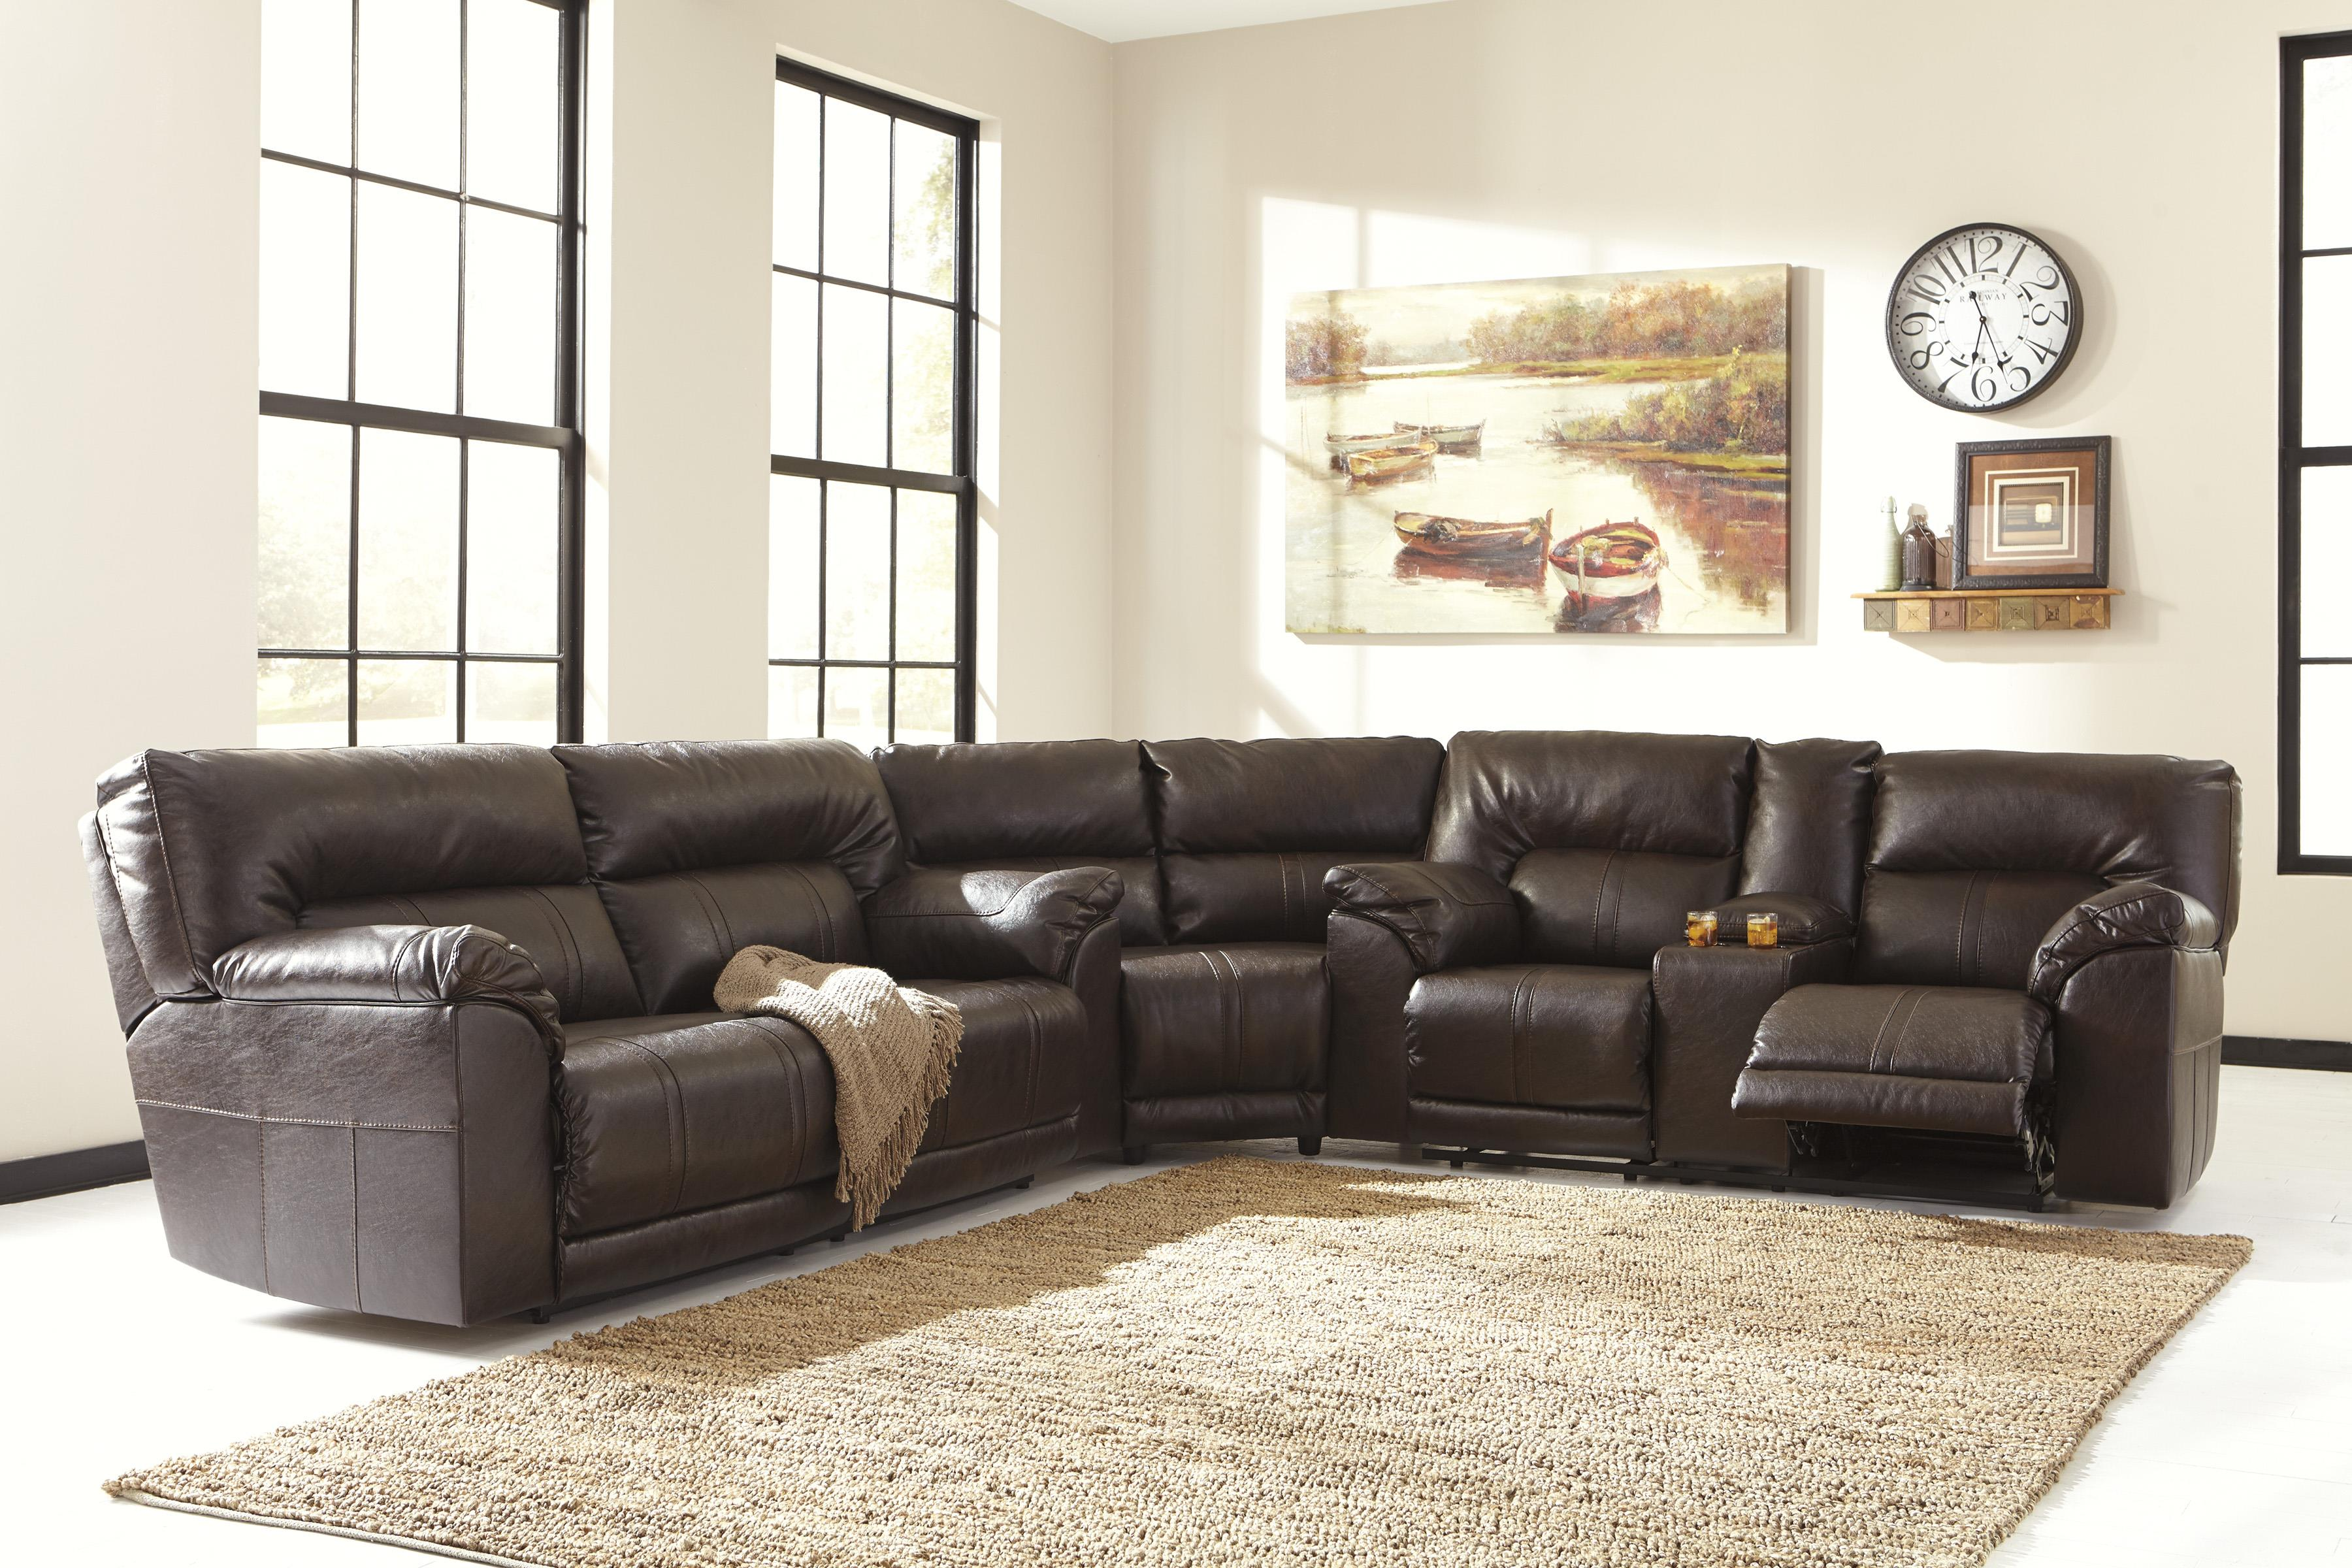 Double Reclining Loveseat W Console By Benchcraft Wolf